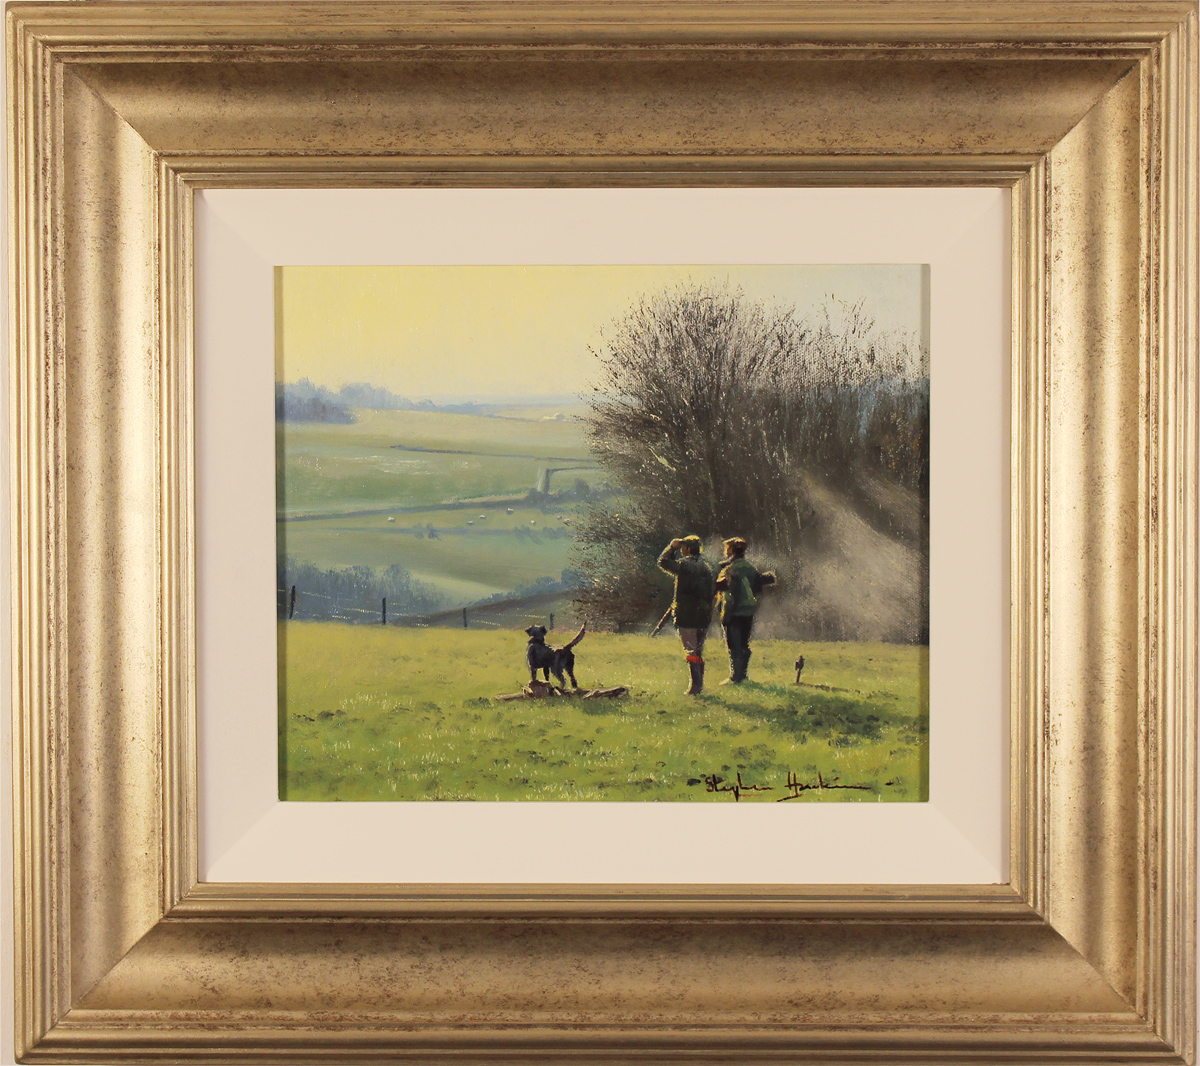 Stephen Hawkins, Original oil painting on canvas, The Country Pursuit, North Yorkshire Click to enlarge